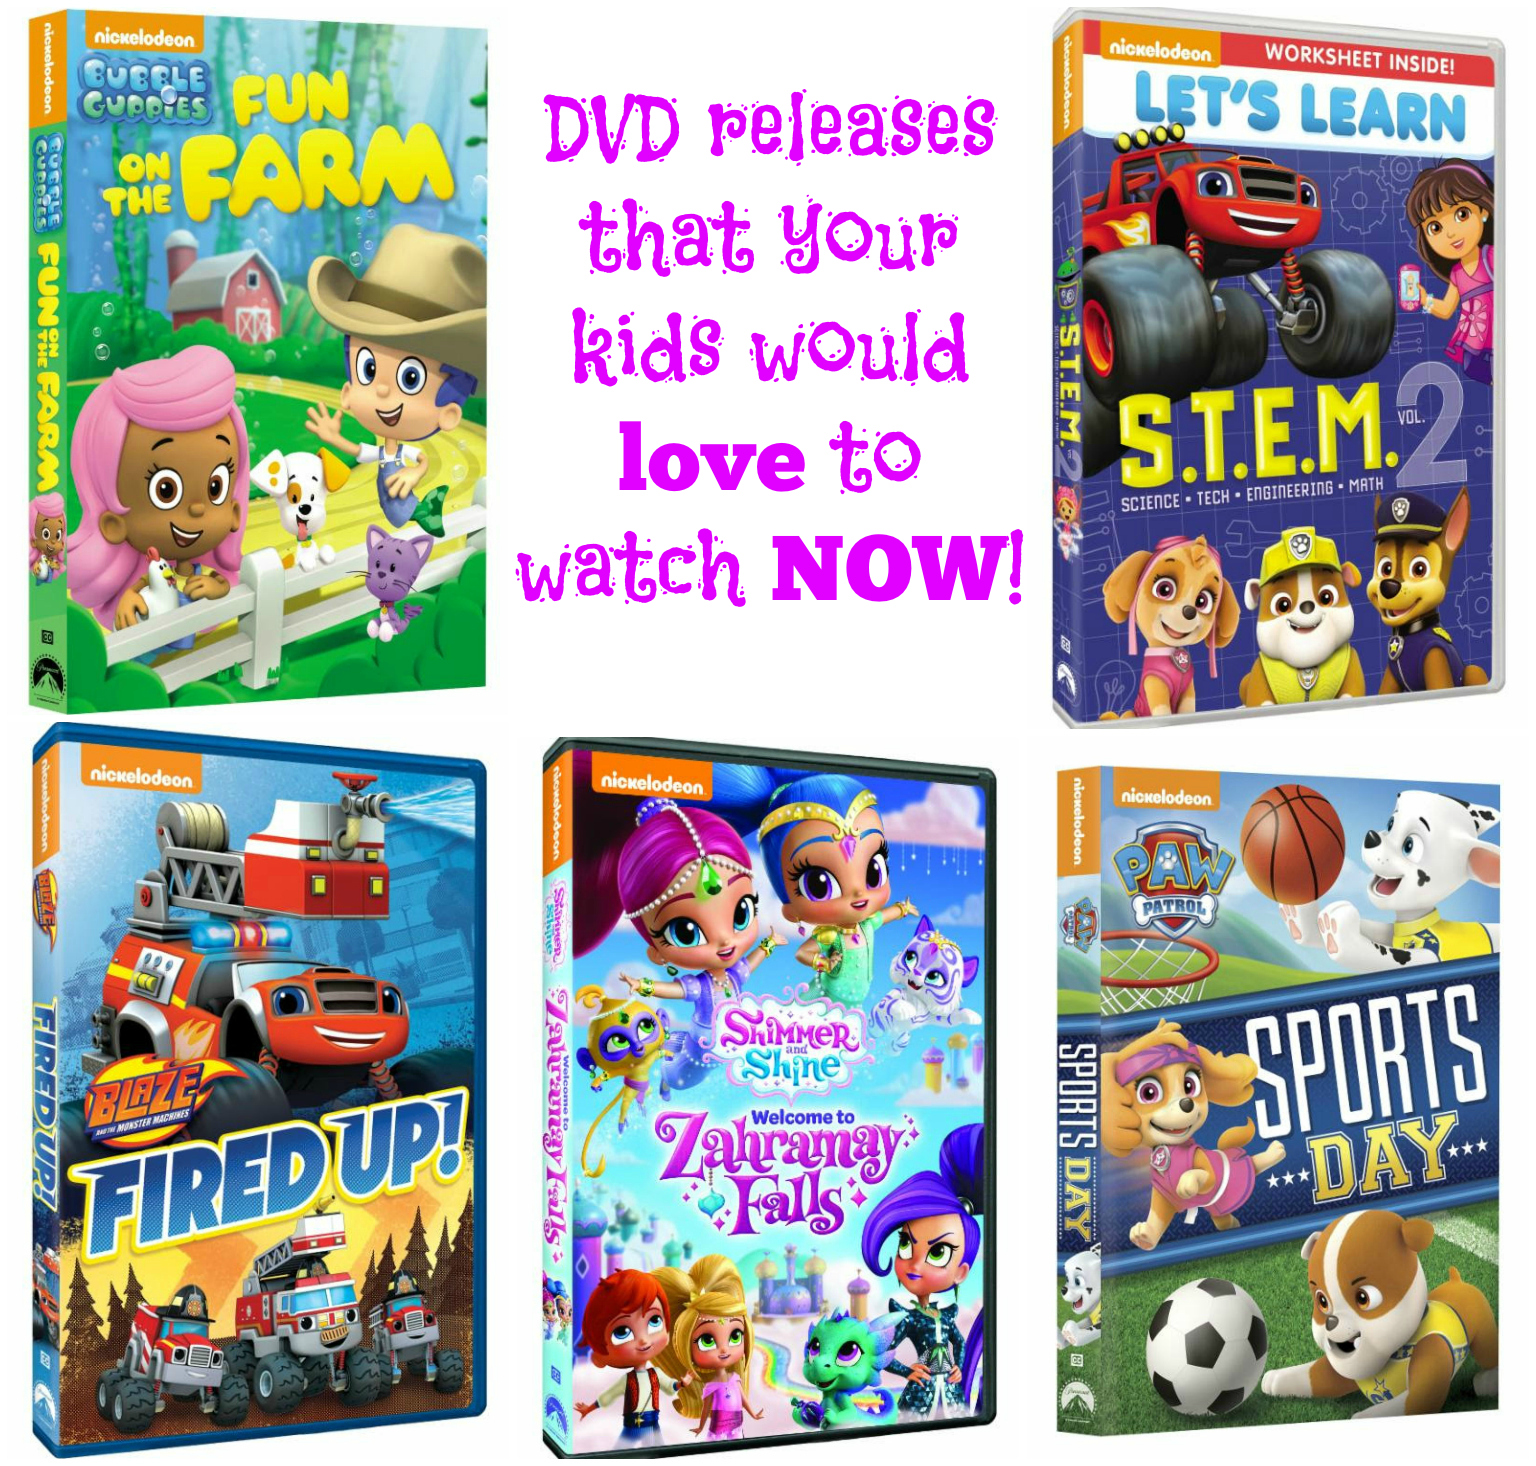 New releases to at home dvd from Nickelodeon